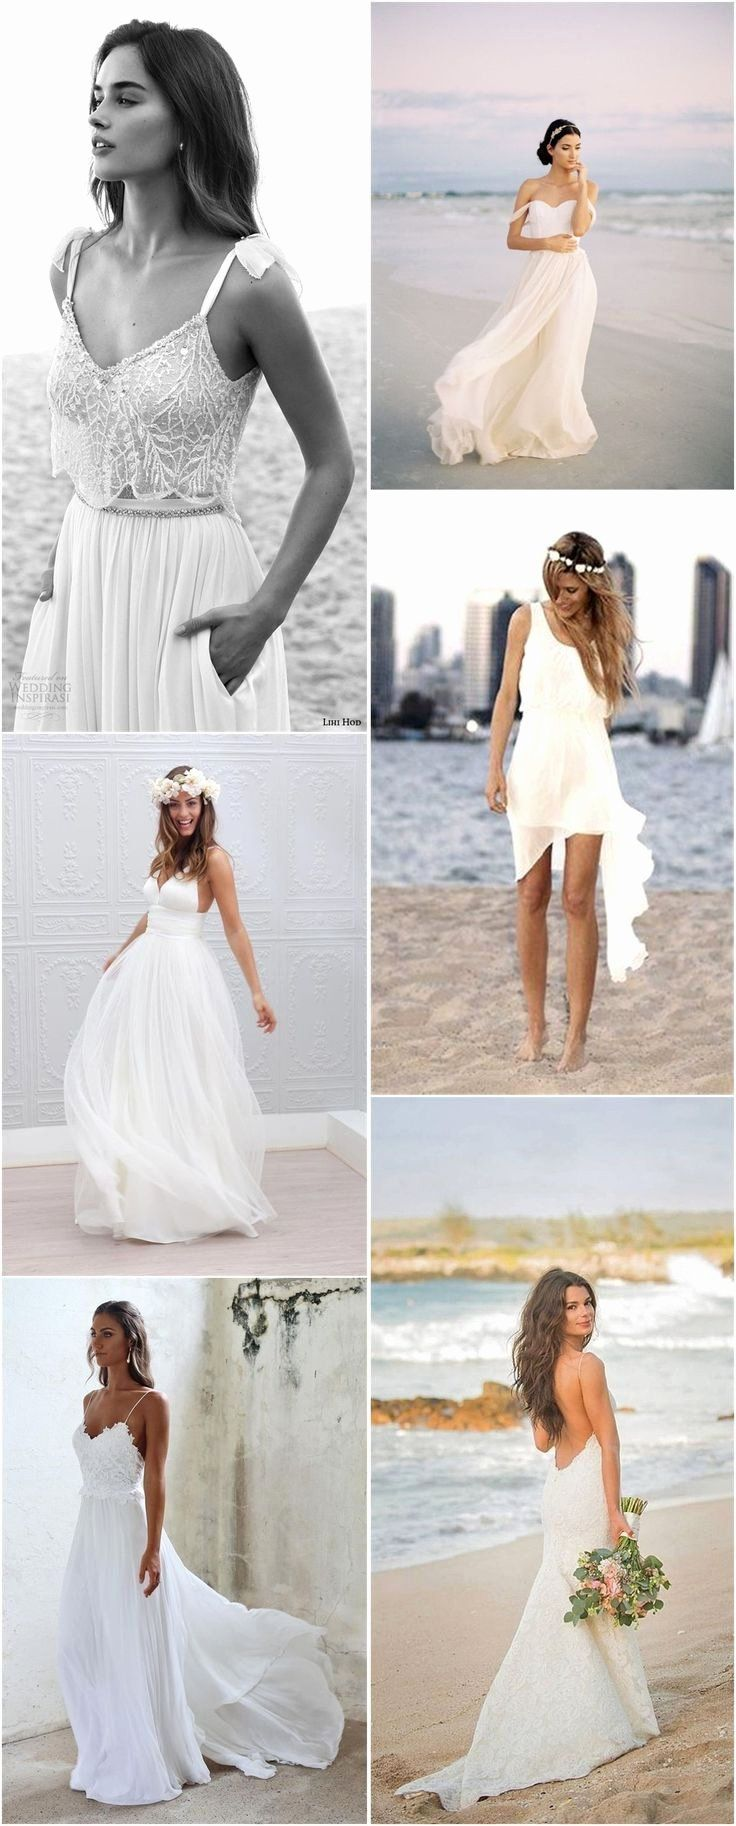 Casual Bridal Wear in 2020 (With images) Beach wedding